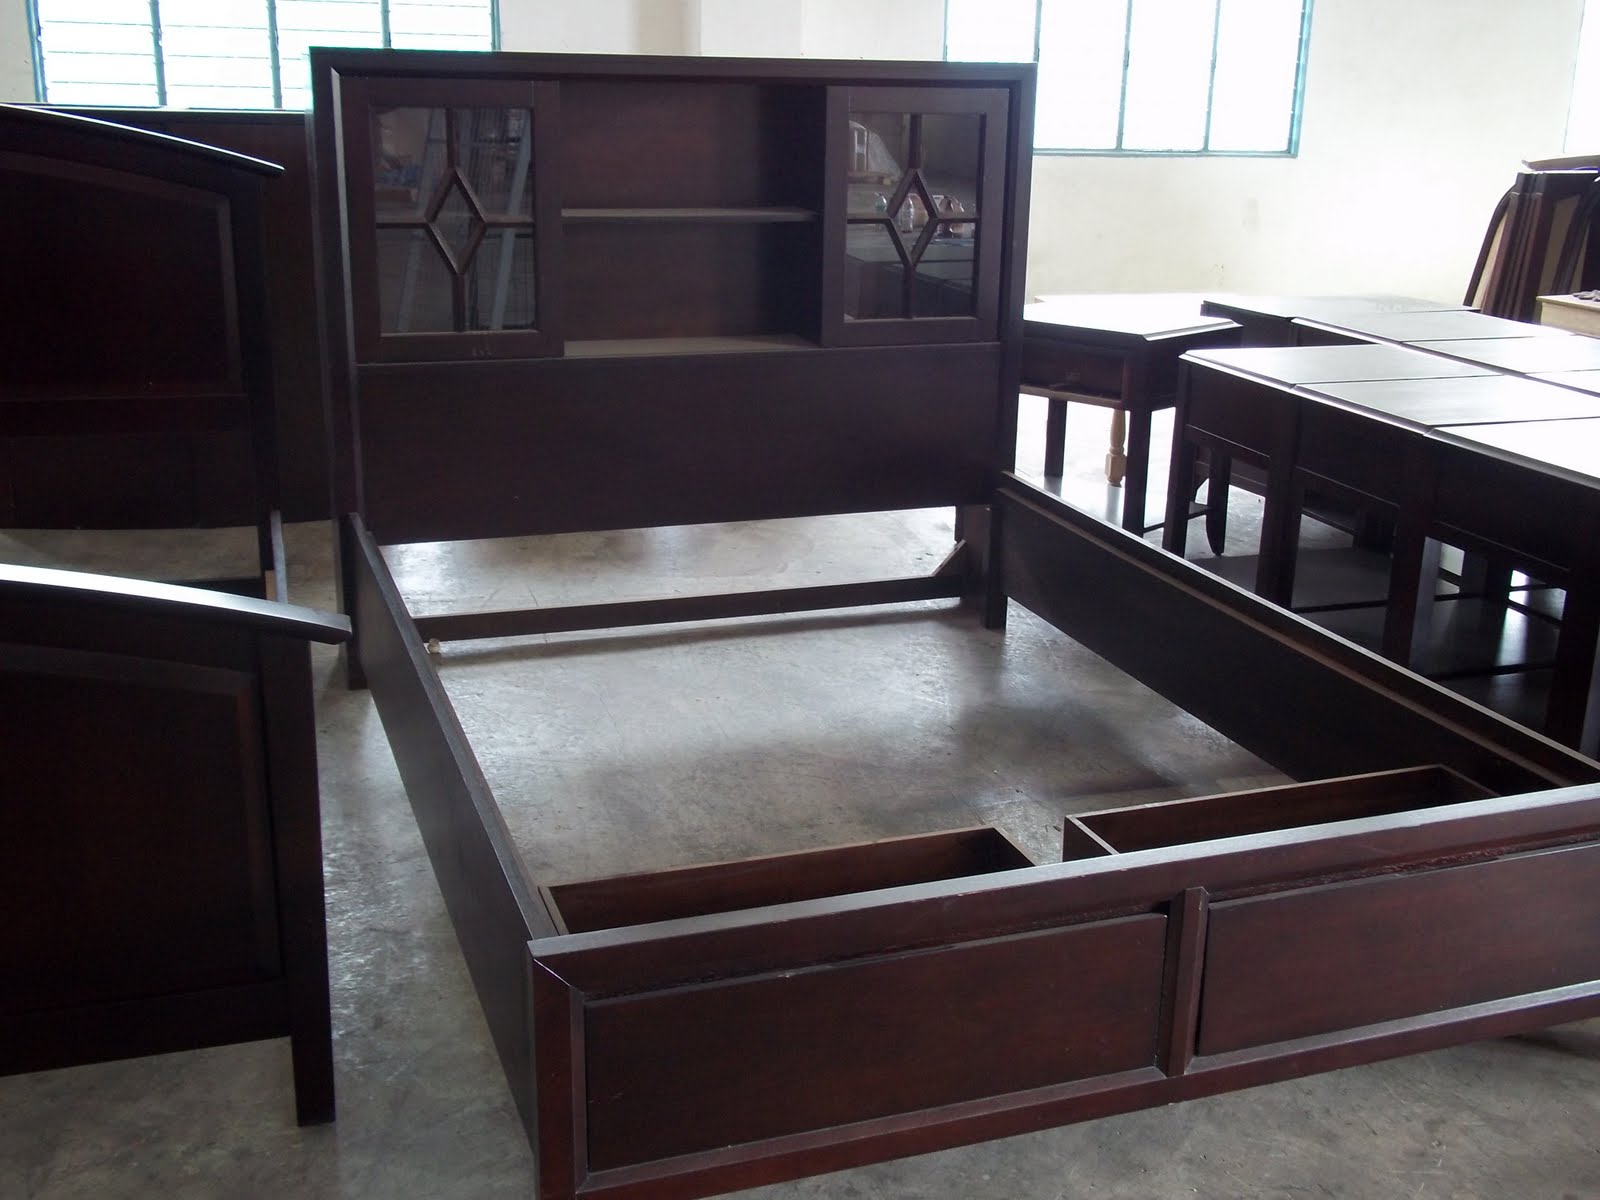 833+: +14: European Design Queen Size Bed made by Solid wood